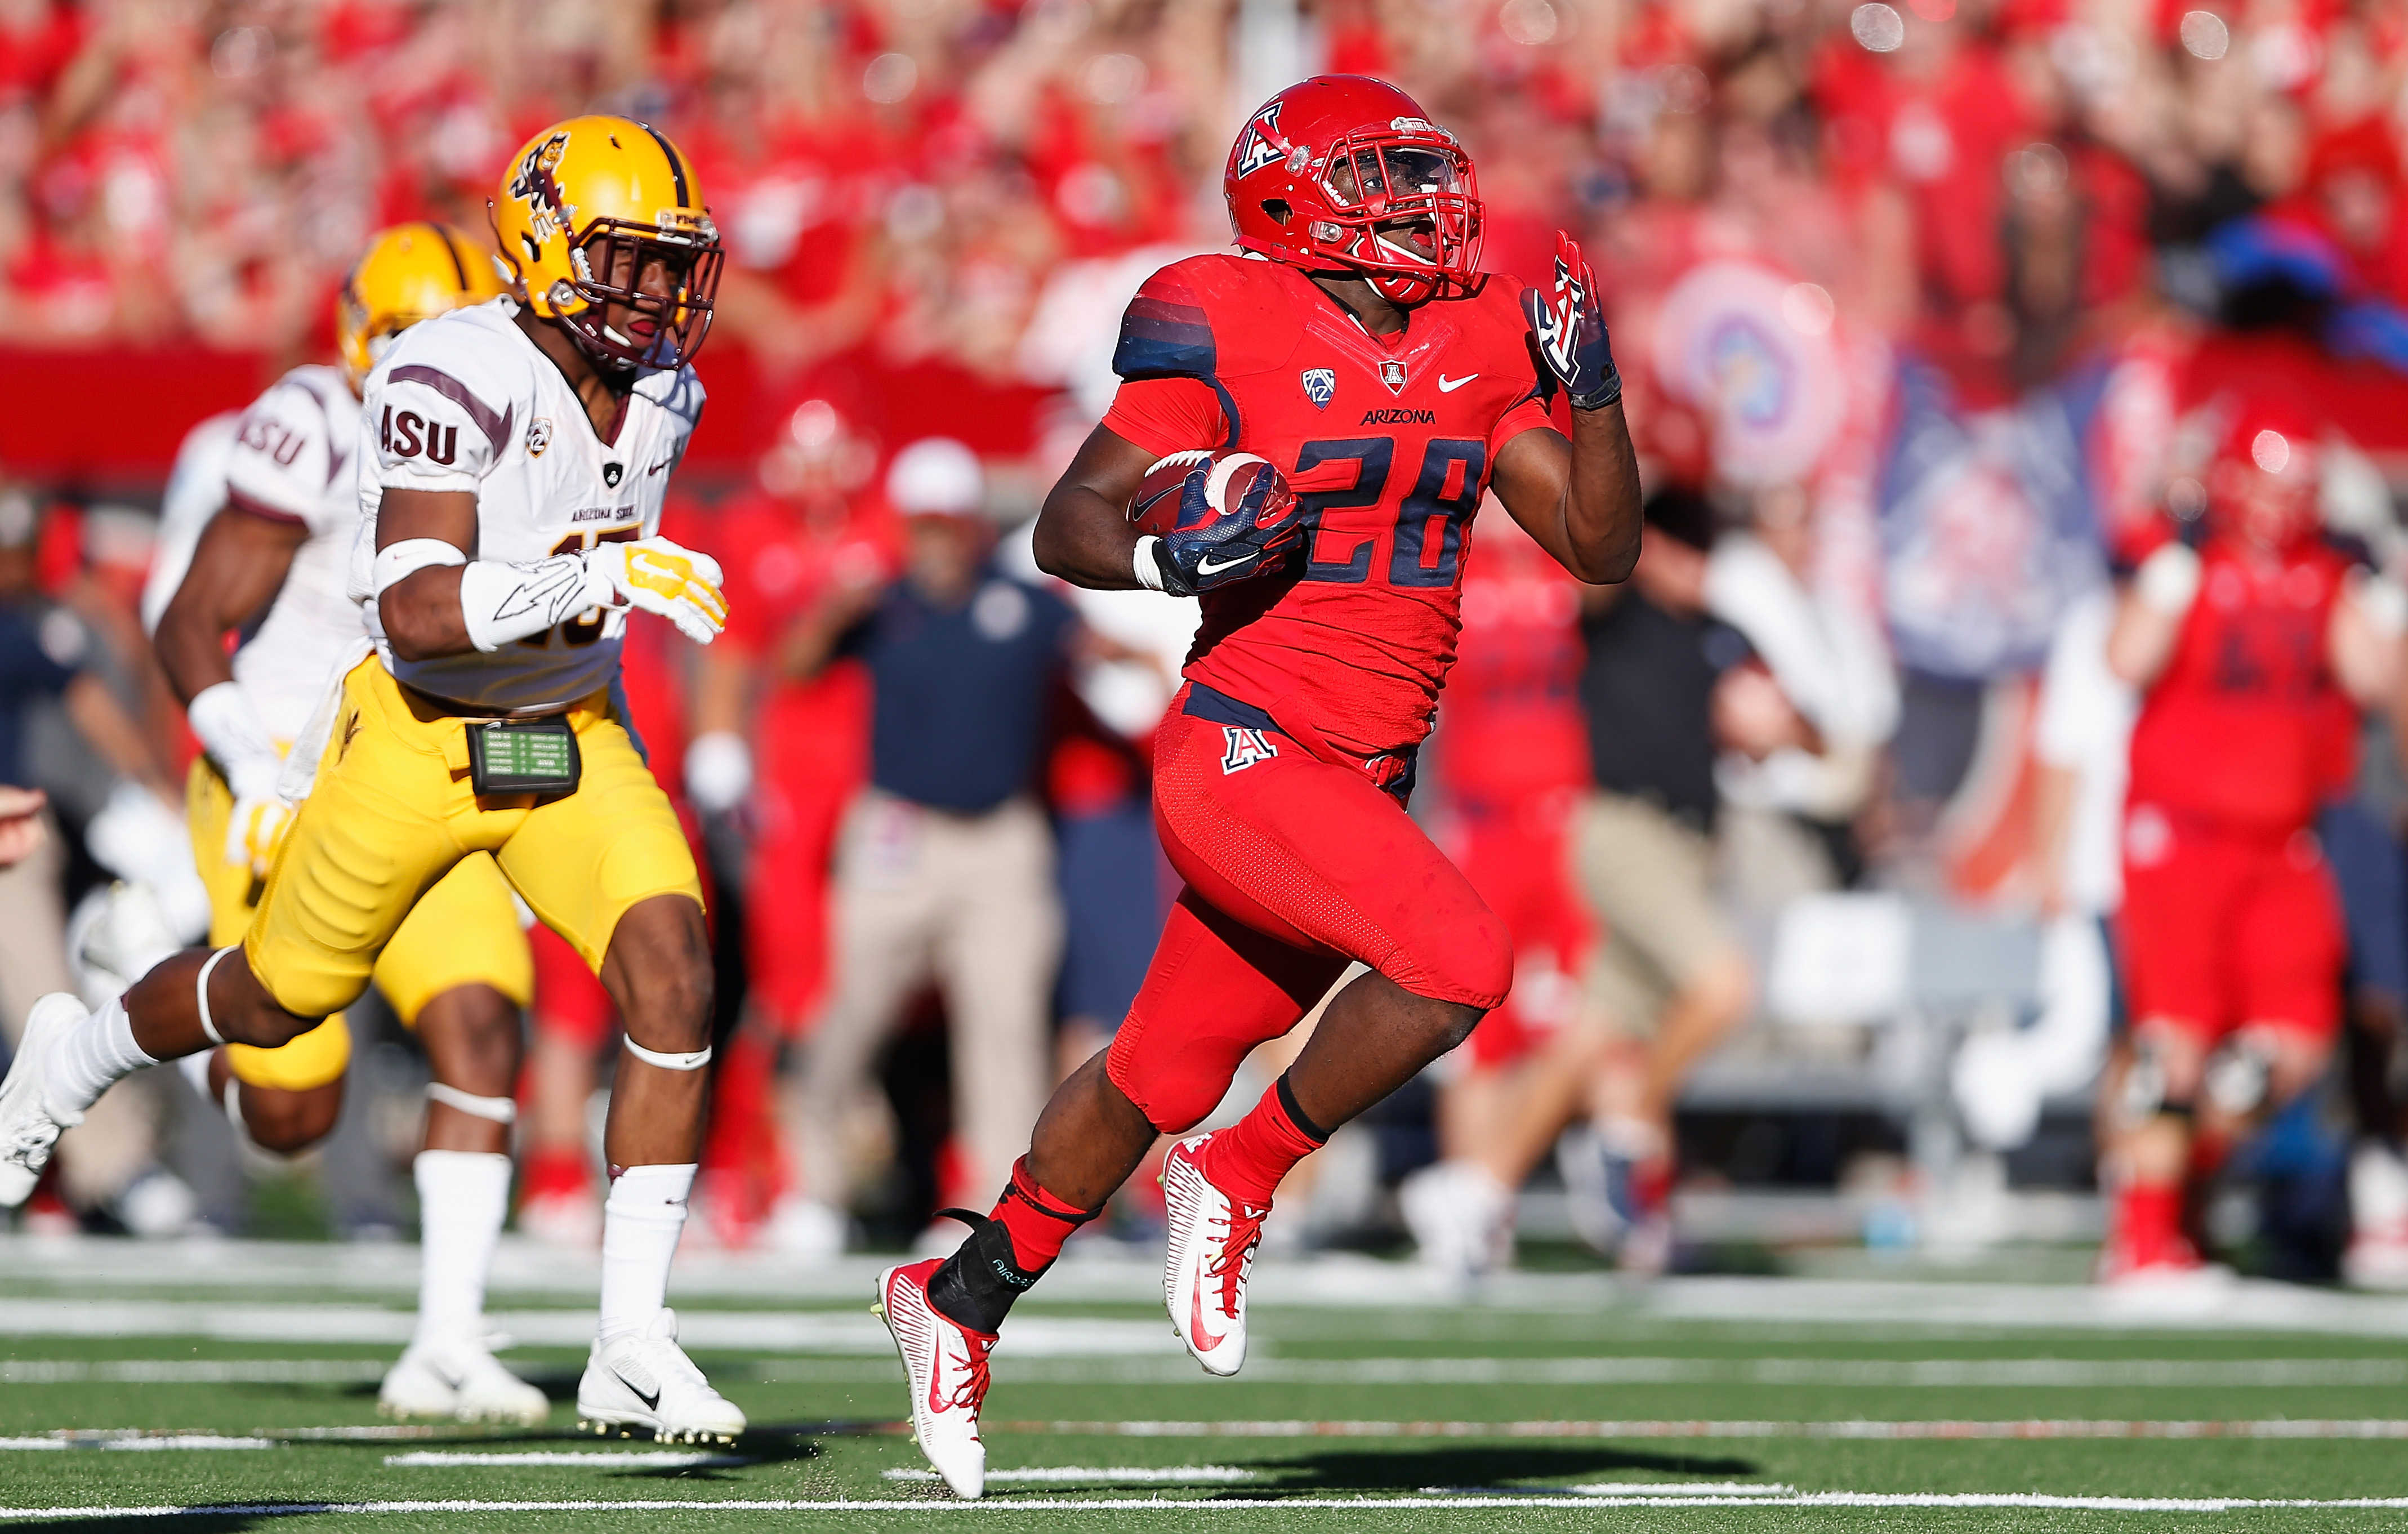 Wildcats Ducks Set To Battle For Pac 12 Title Pac 12